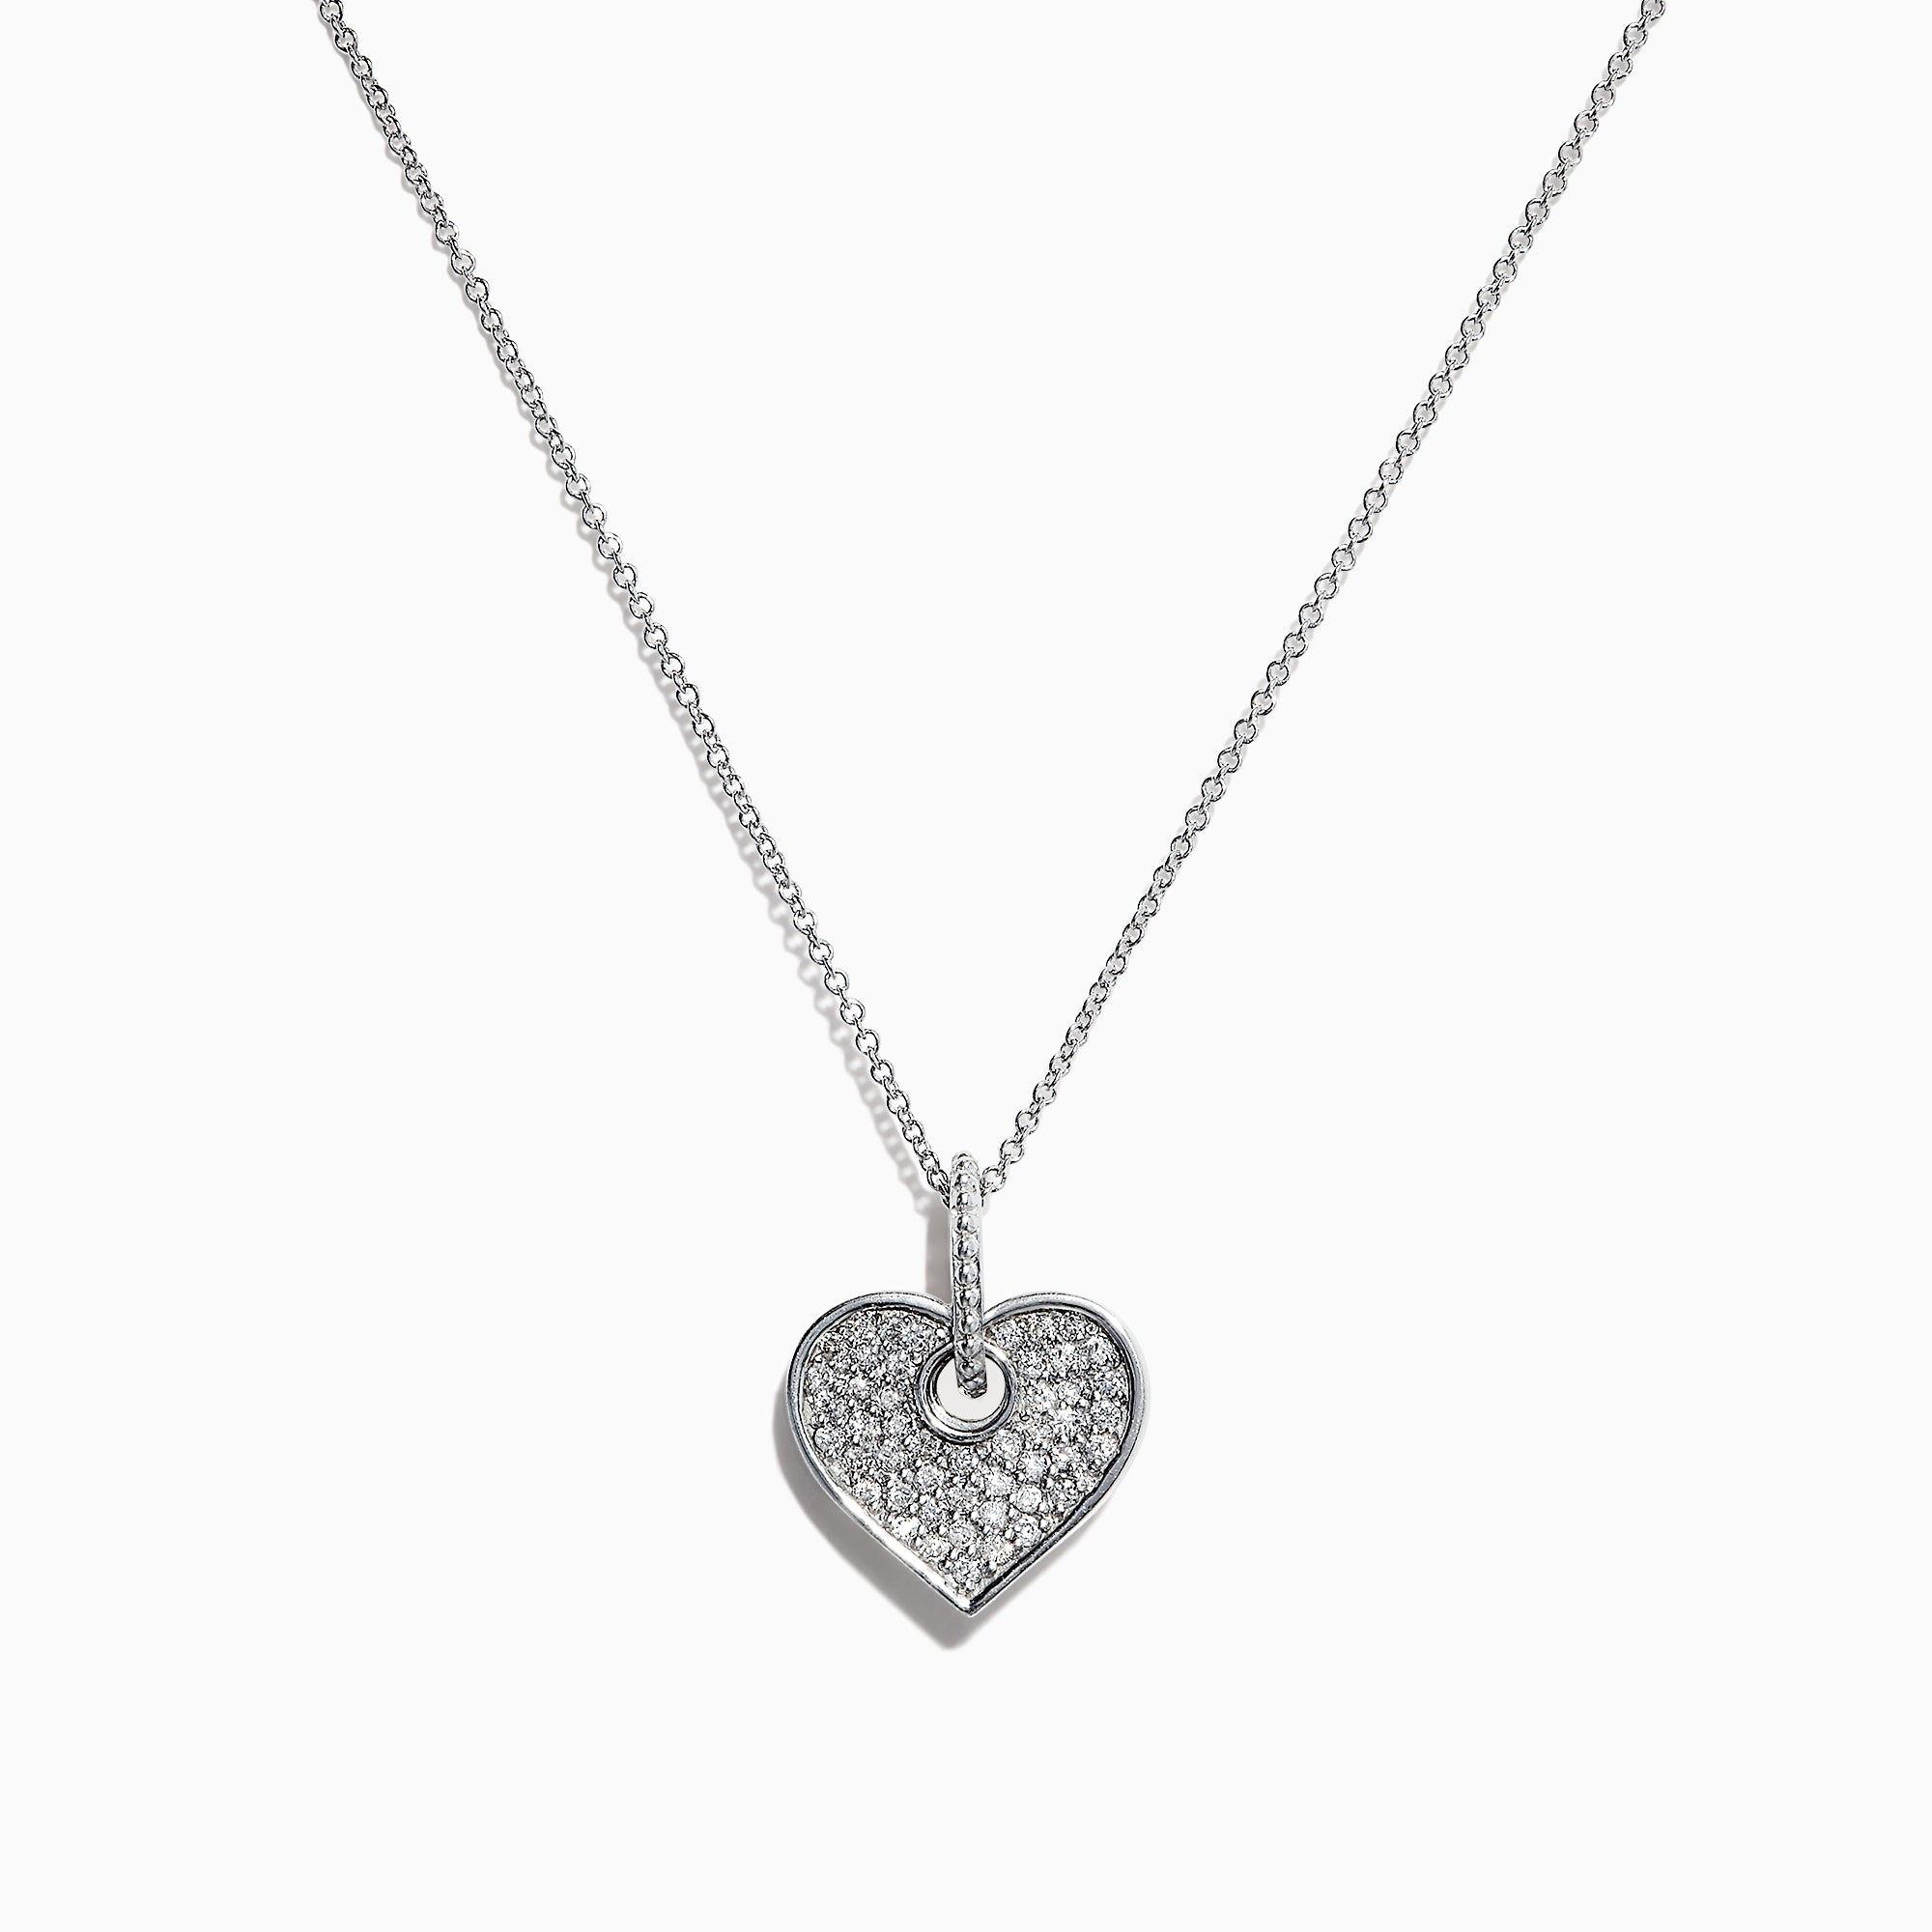 Effy 14K White Gold Diamond Heart Pendant, 0.35 TCW